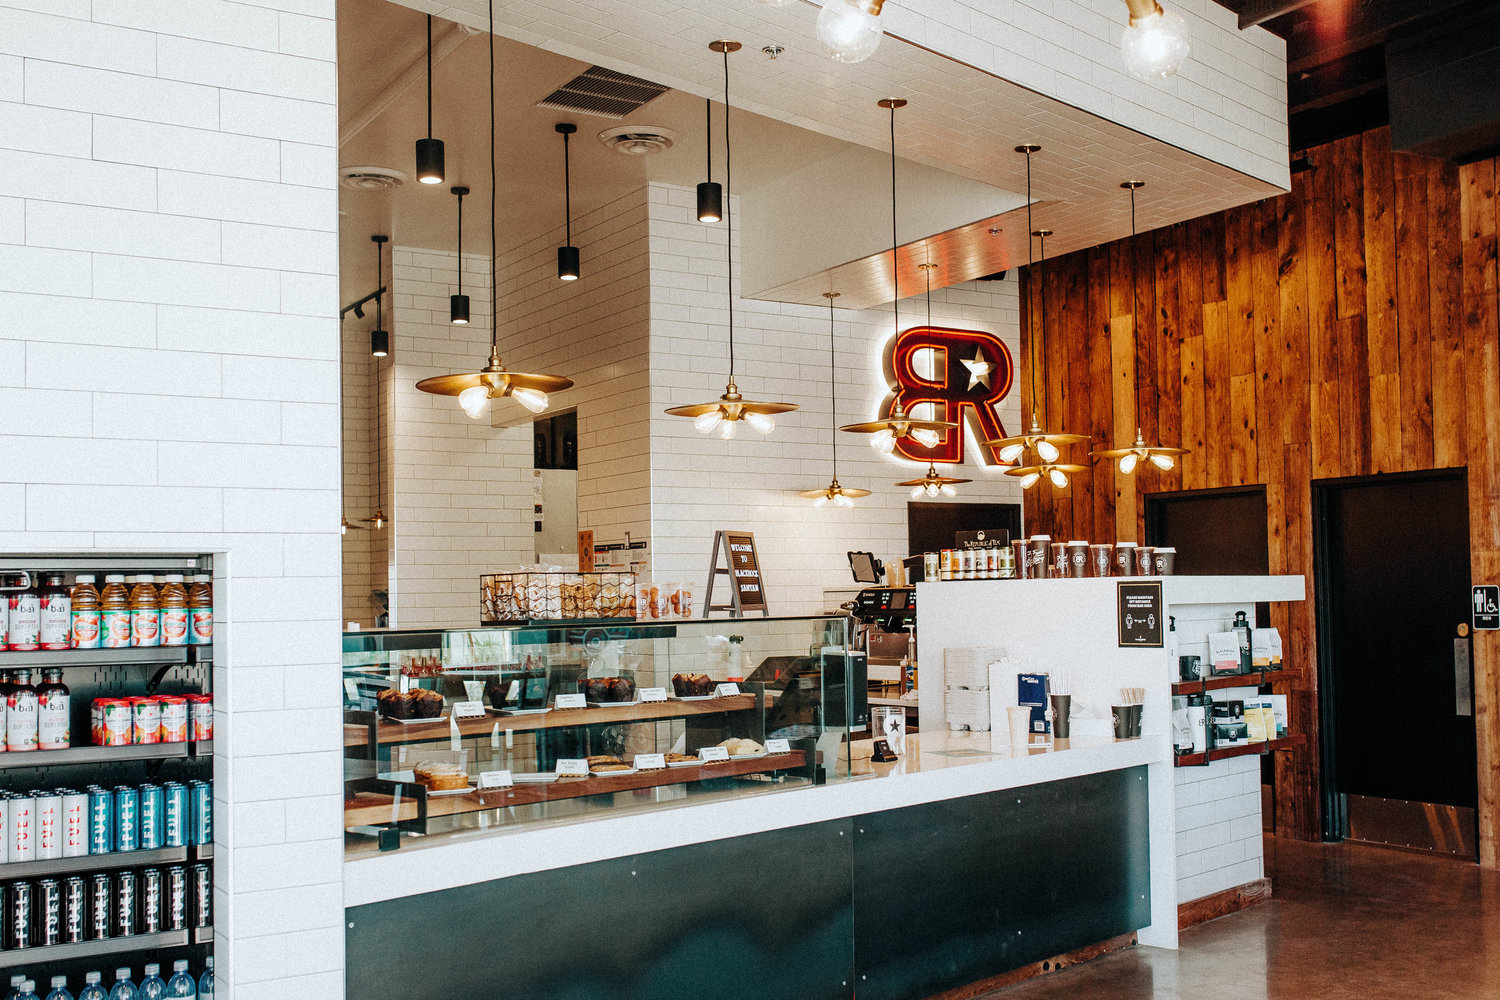 Black Rock Coffee Bar is is expanding its presence in Arizona with the addition of three new locations in Phoenix, Tempe and Scottsdale.